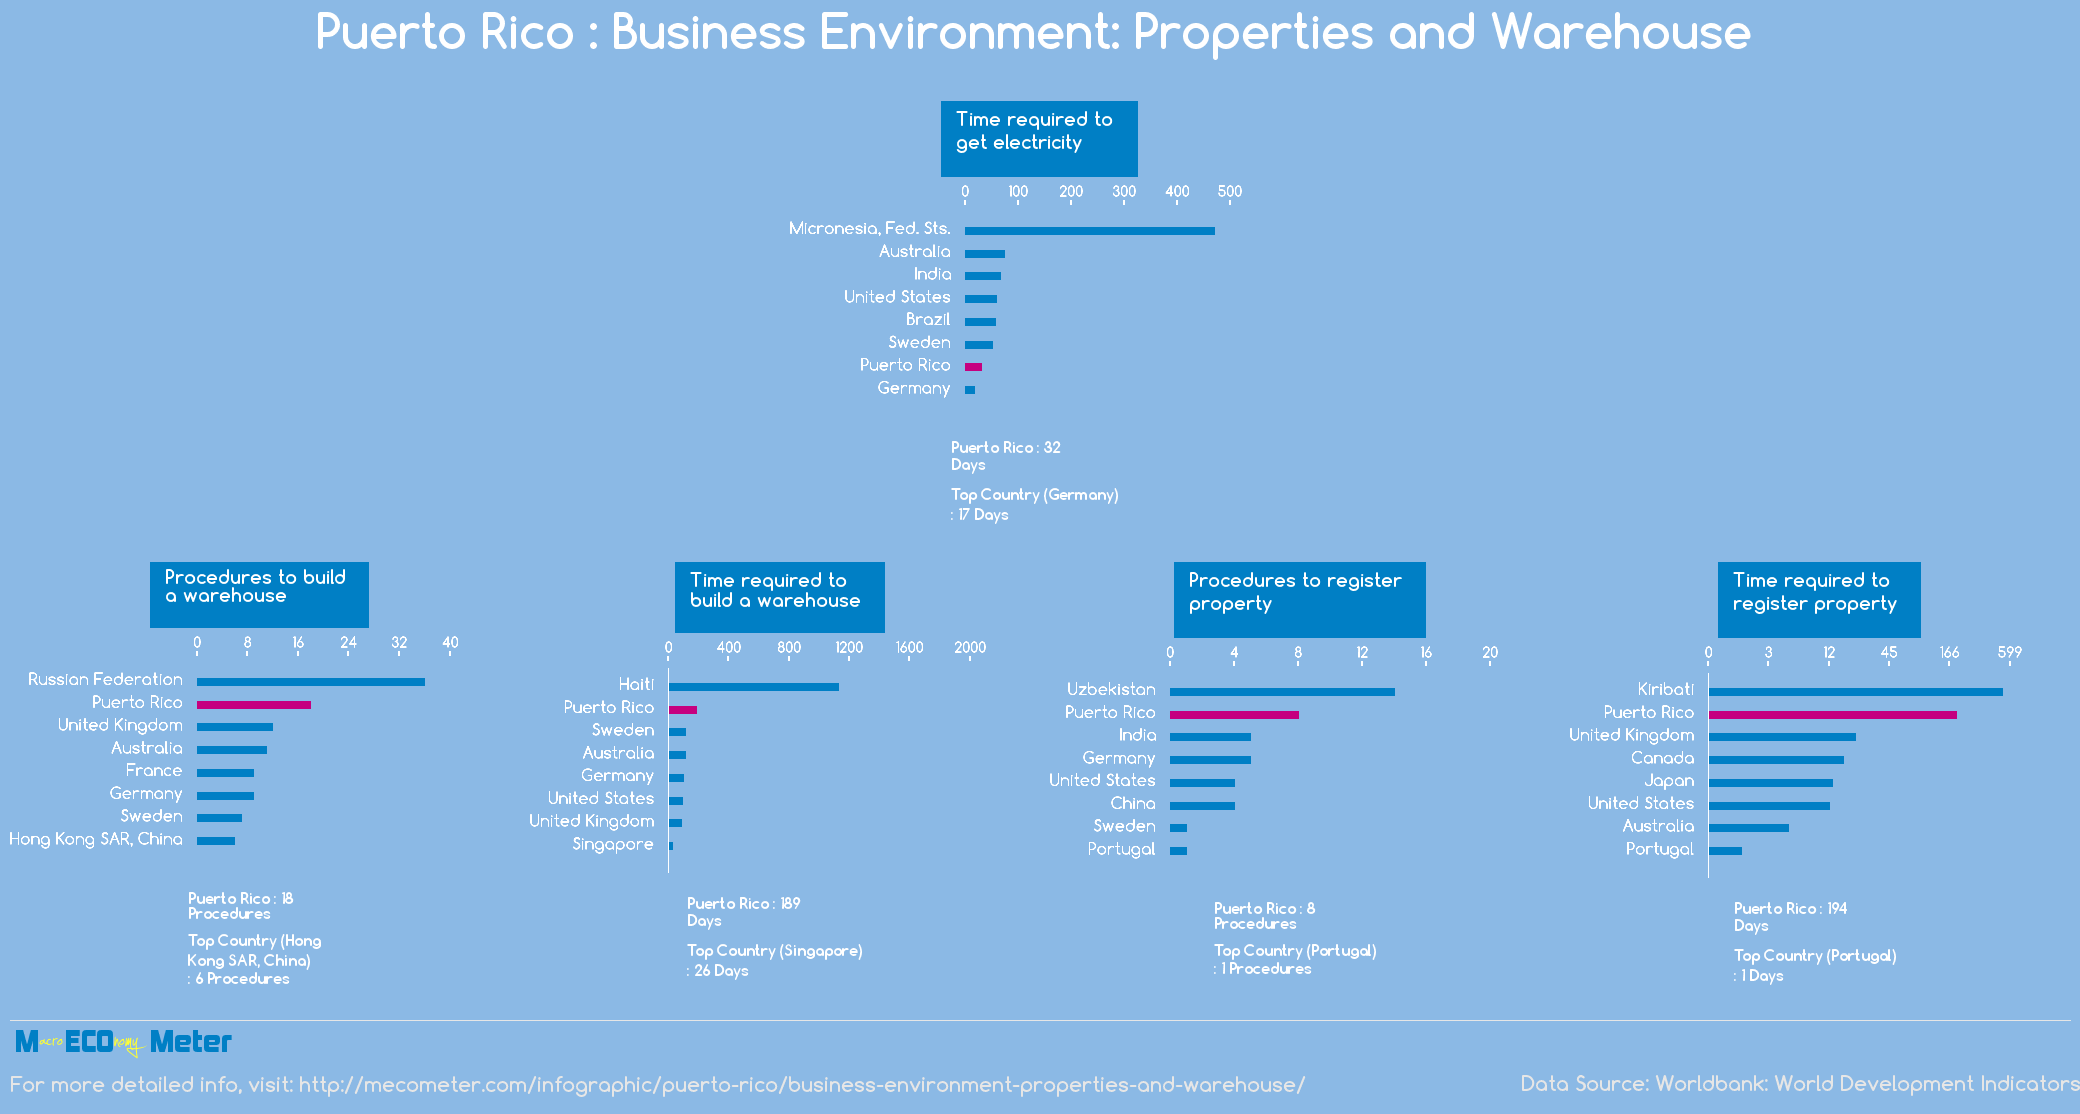 Puerto Rico : Business Environment: Properties and Warehouse